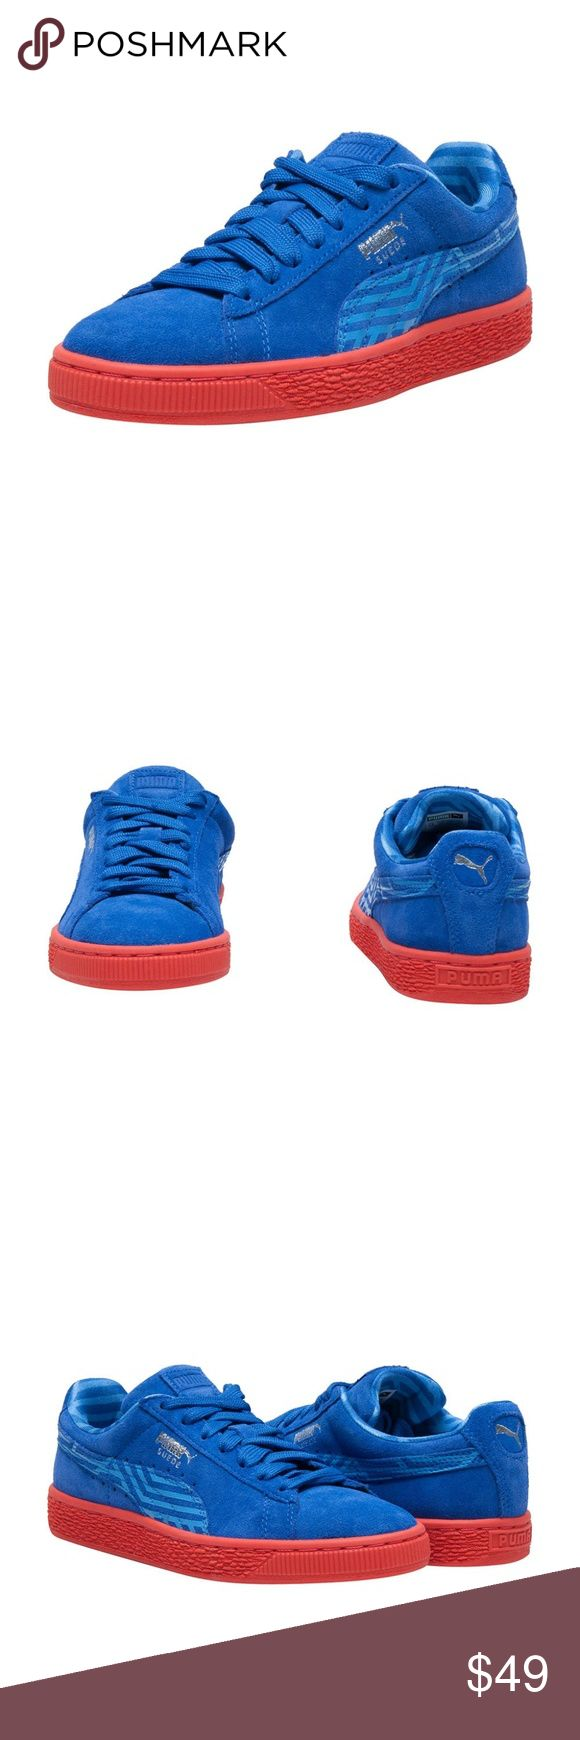 Women Puma Sneakers Suede classic sneaker Women's low top sneaker Lace up closure PUMA cat logo branding Cushioned inner sole for comfort Traction rubber outsole for performance Puma Shoes Sneakers